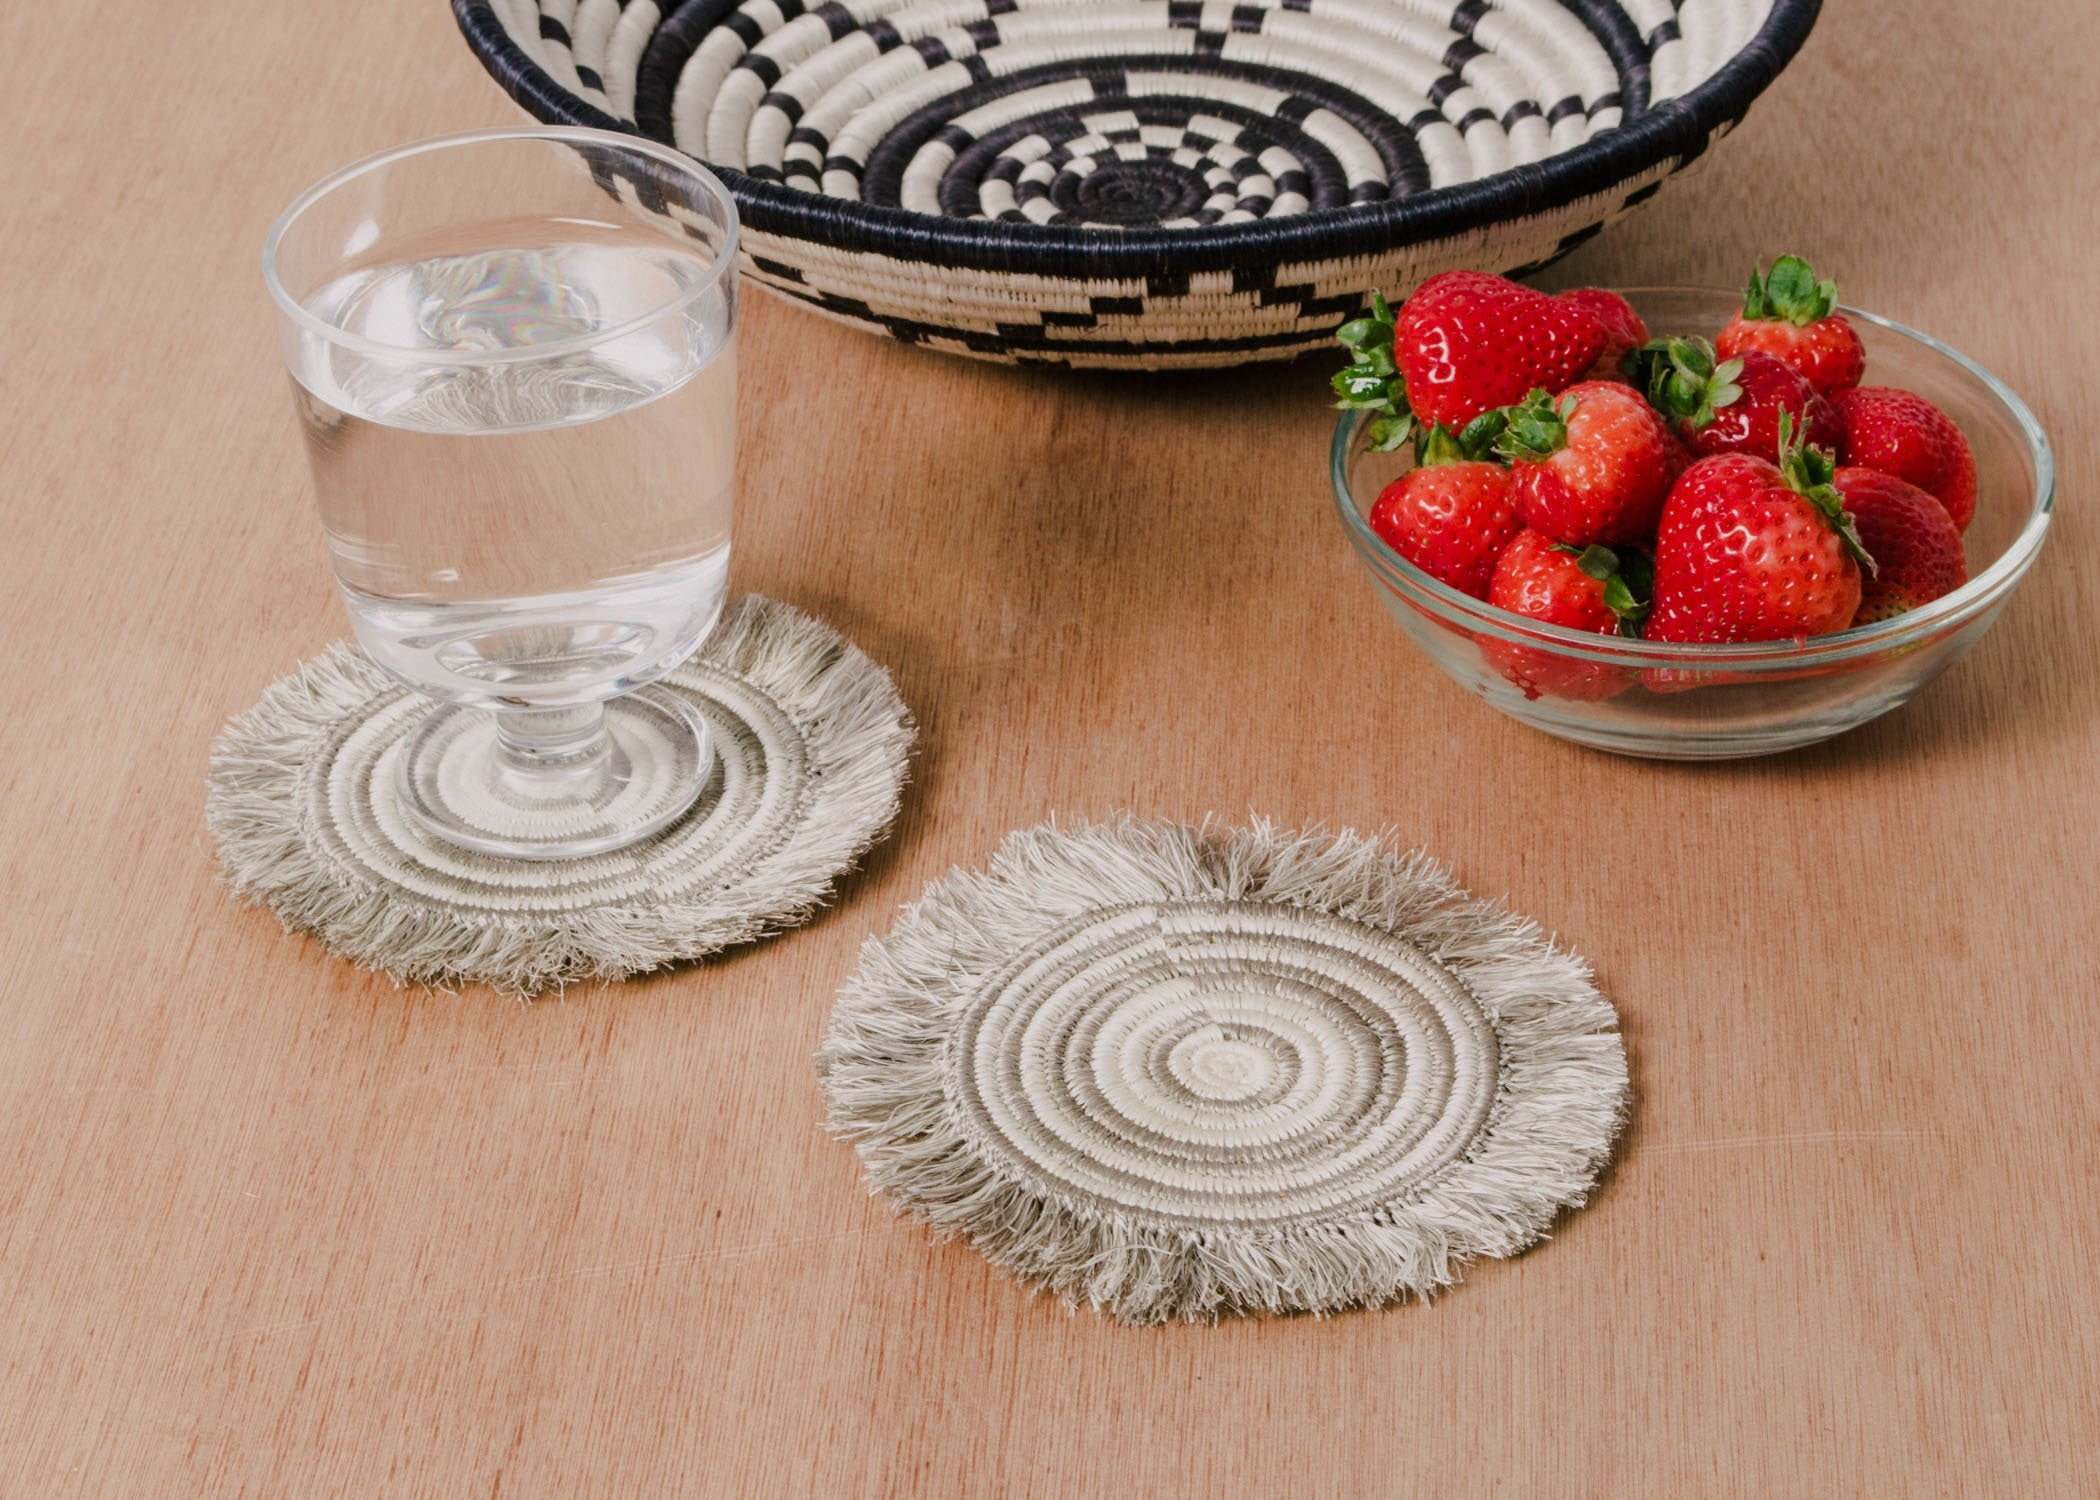 Fringed Taupe Geo Drink Coasters, Set of 4 - KAZI - Artisan made high quality home decor and wall art